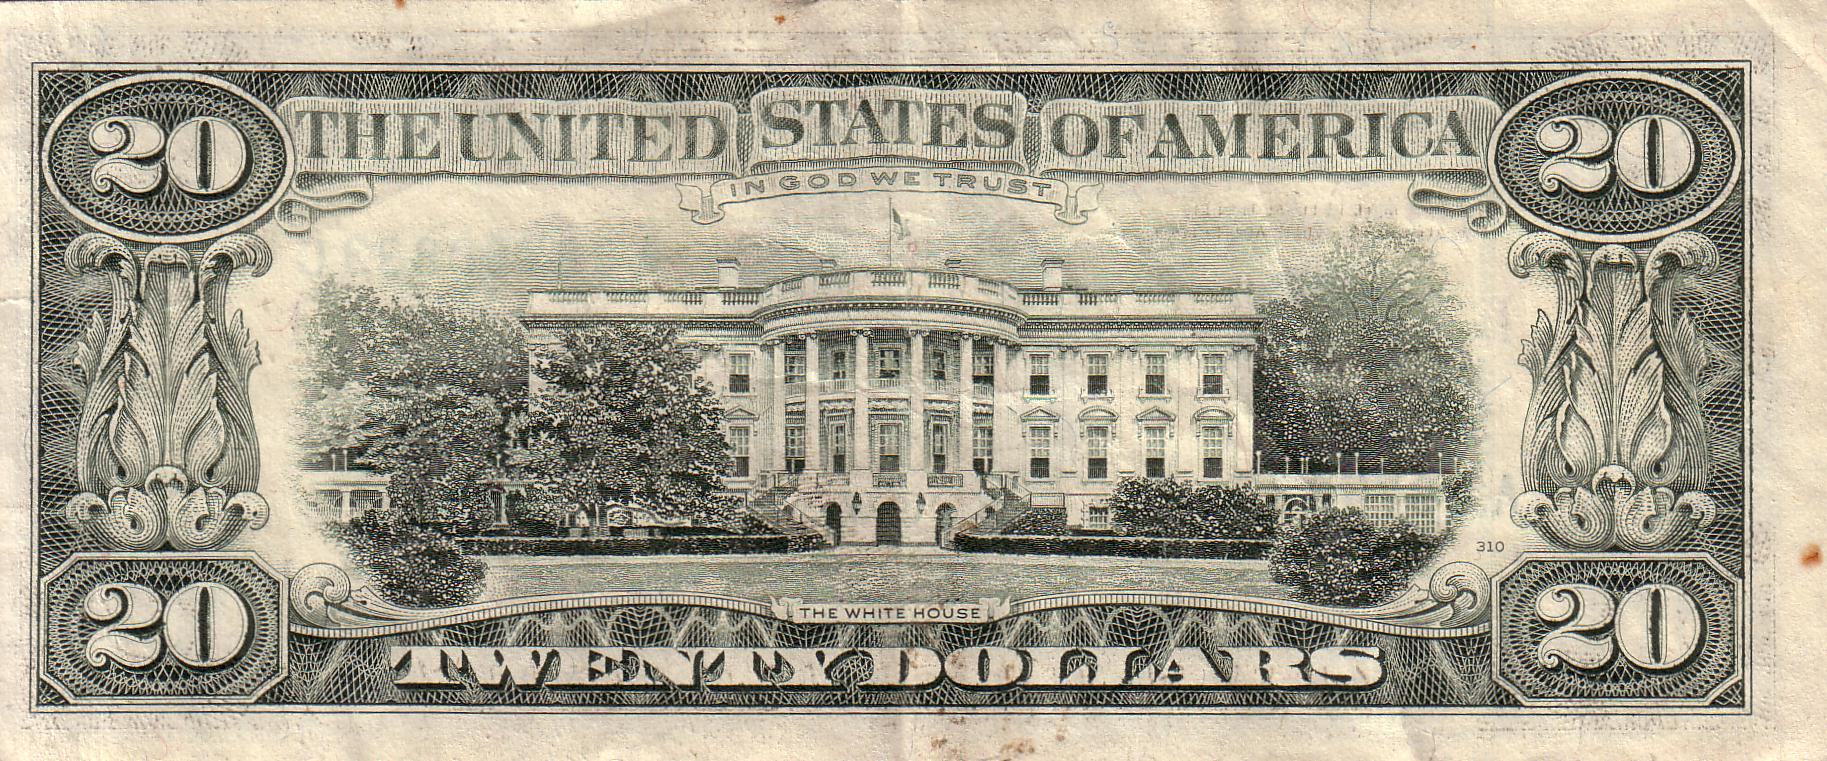 1990 series of the $20 bill, featuring the Magnolia tree. (Credit: Public Domain)